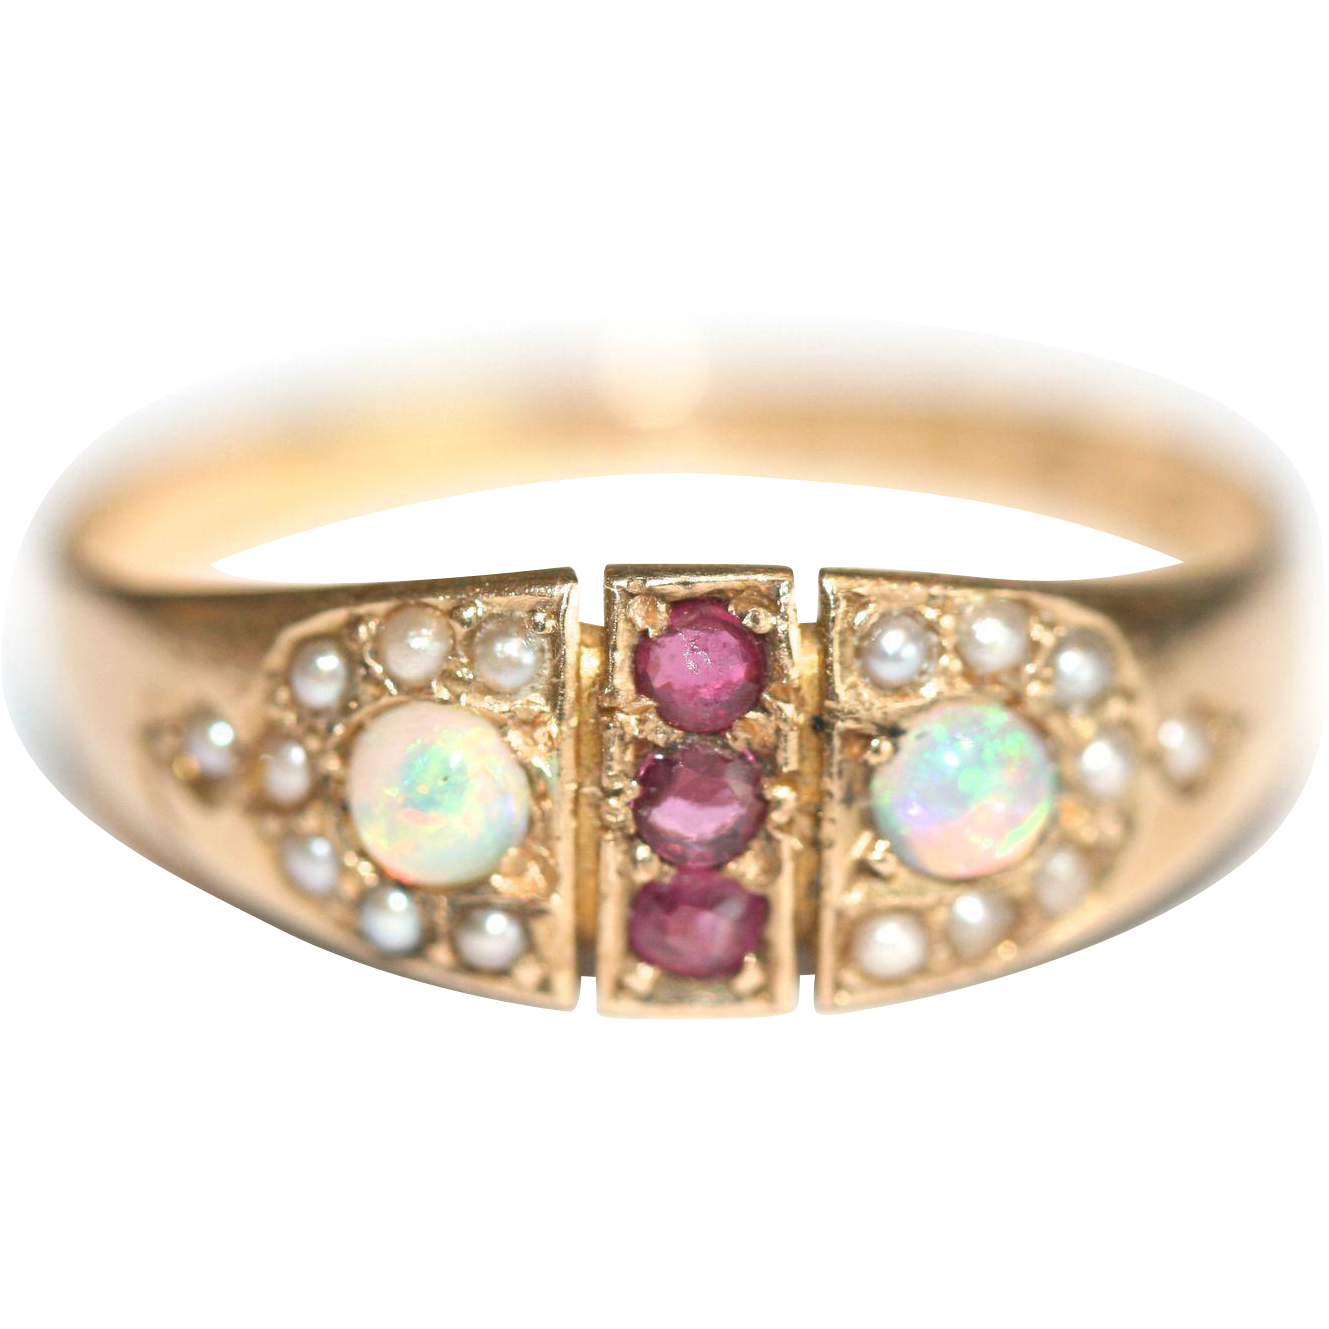 pearls ring seed gold civil node design pearl flower era opal karat antique war